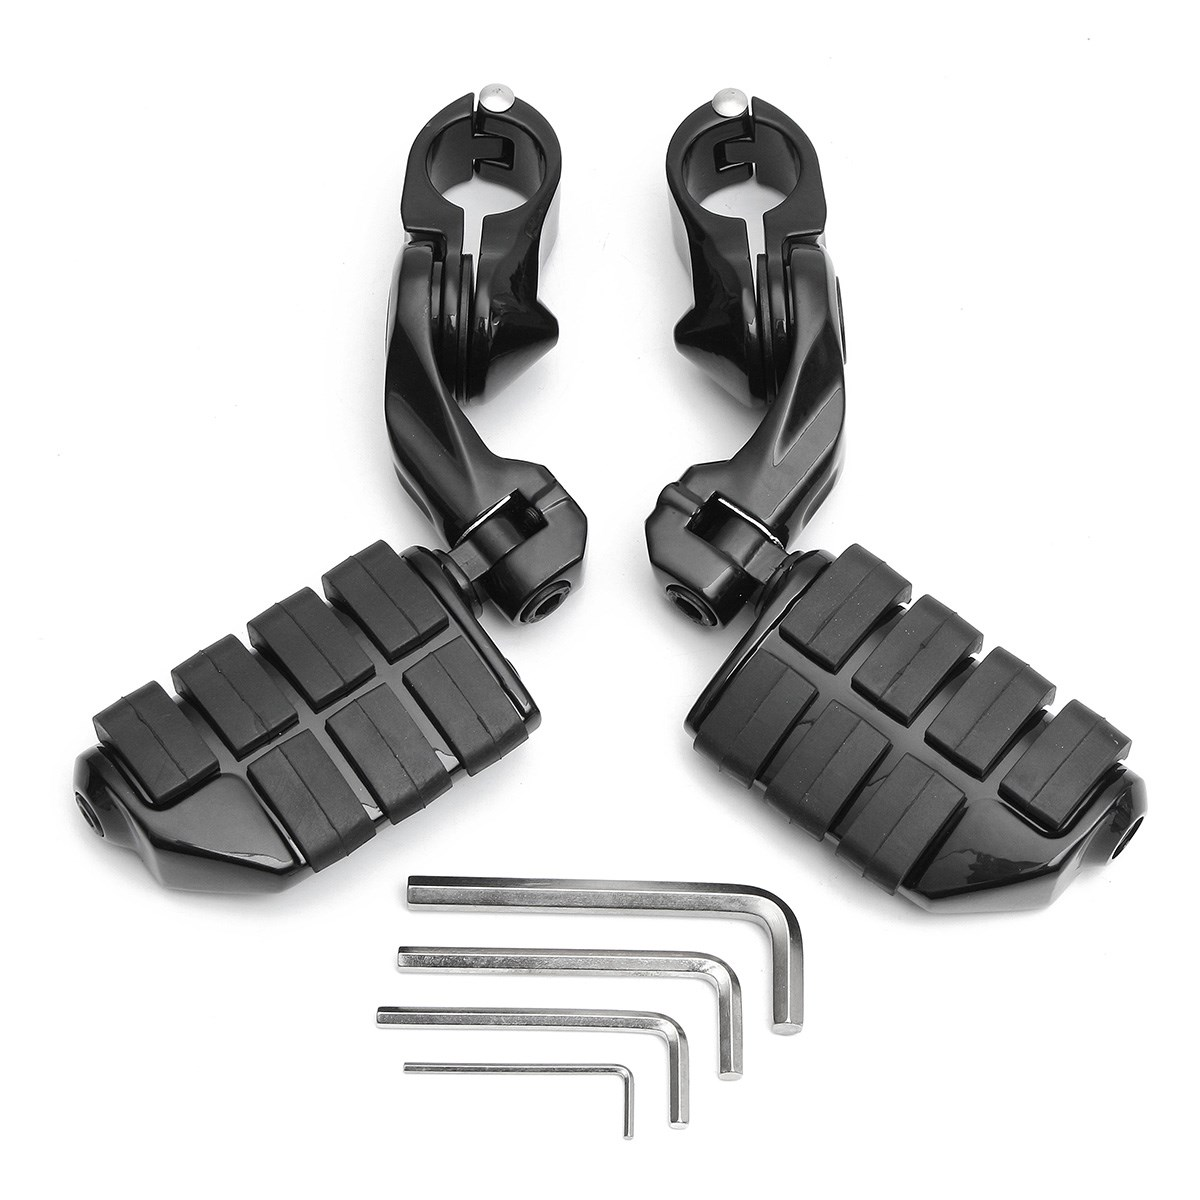 1 Pair Black Motorcycle Short Angled Foot Rest Adjustable Peg Pedal 1.25/32mm For Harley-Davidson free shipping 10pcs as19 hg as19 tqfp48